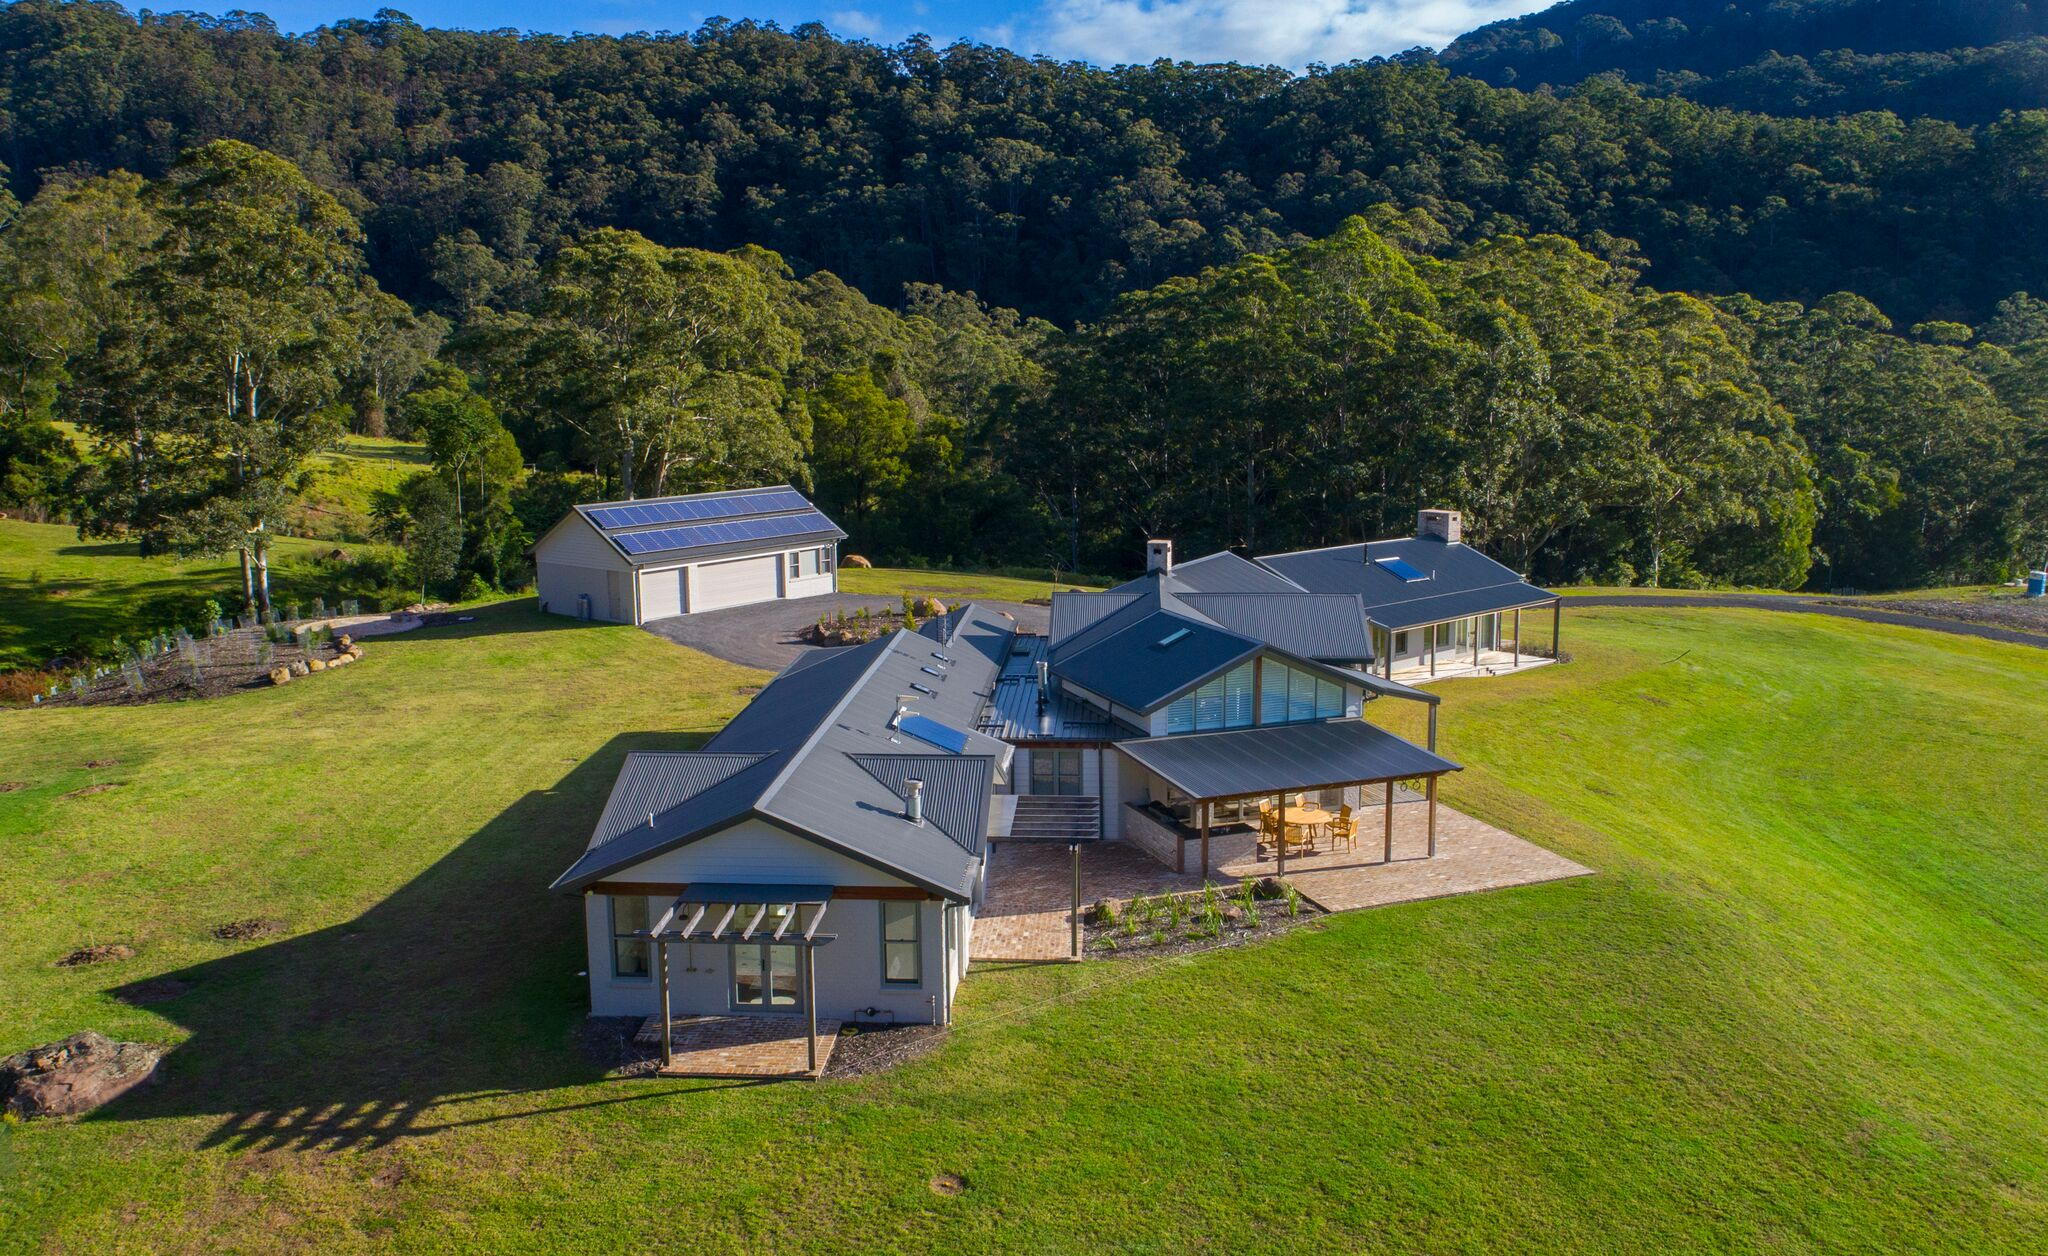 THE PROJECT IN KANGAROO VALLEY, NEW SOUTH WALES, AUSTRALIA.